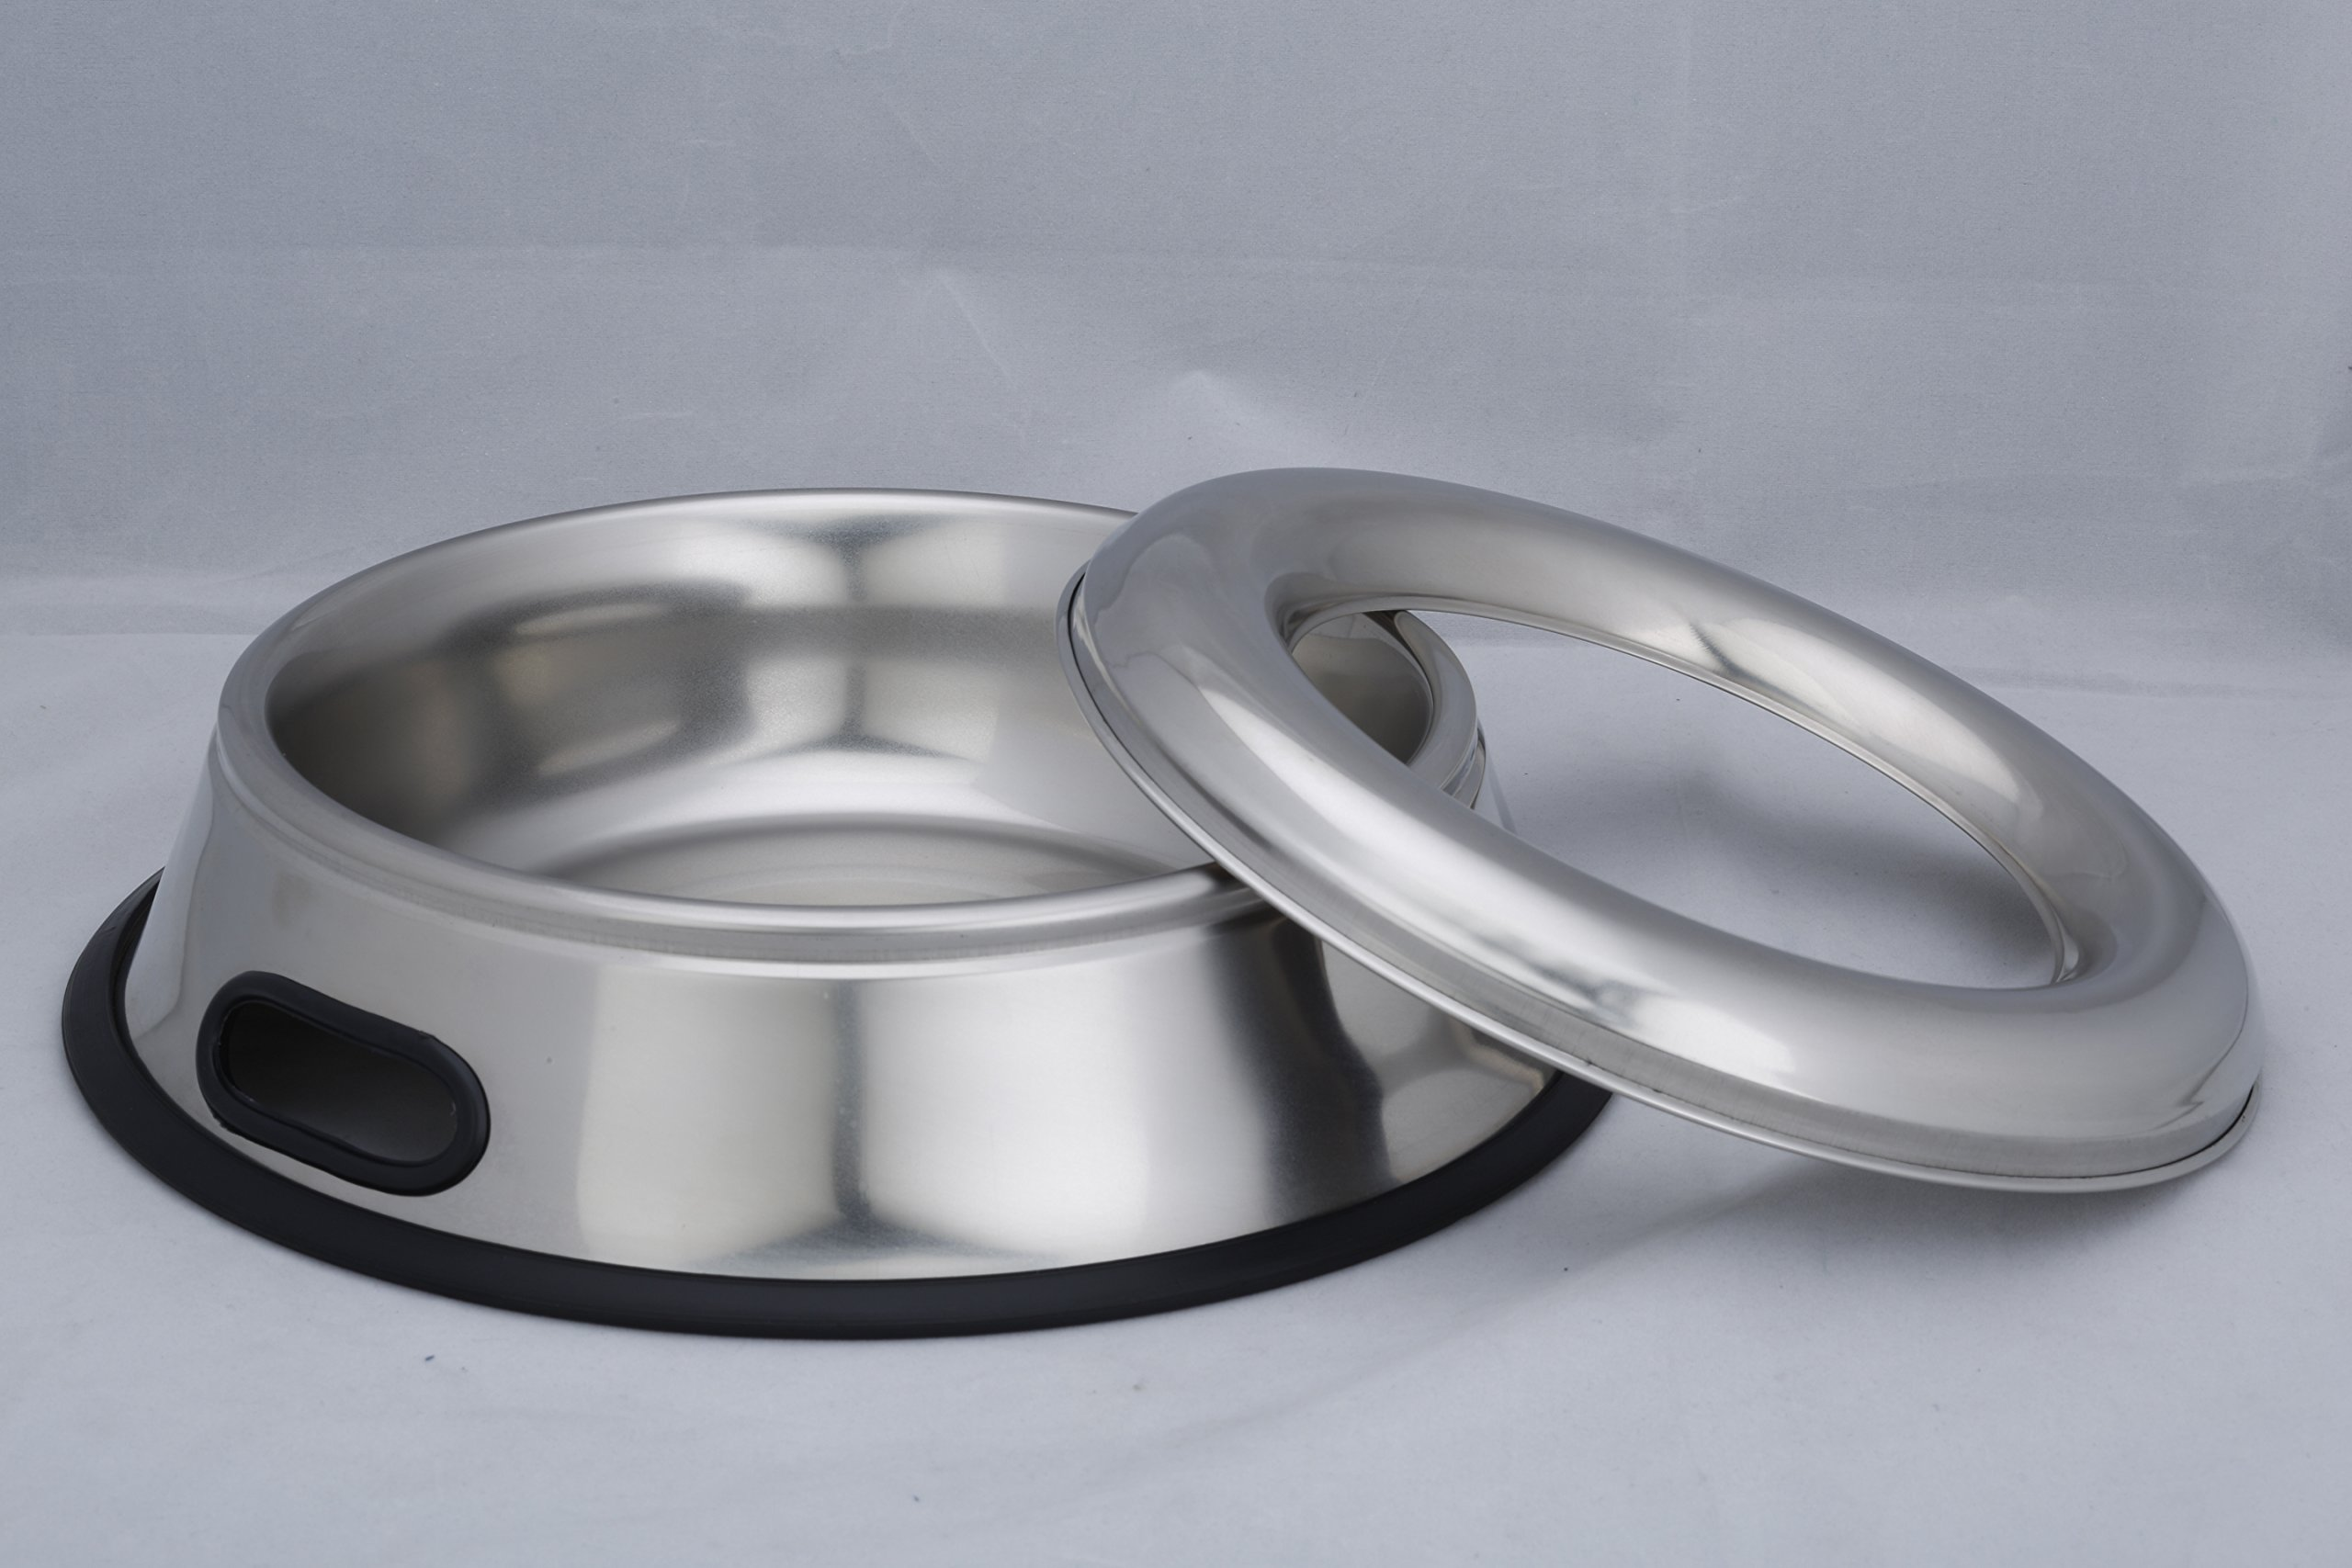 Indipets Stainless Steel Spill Proof - Splash Free No Tip Anti Skid Dish with...